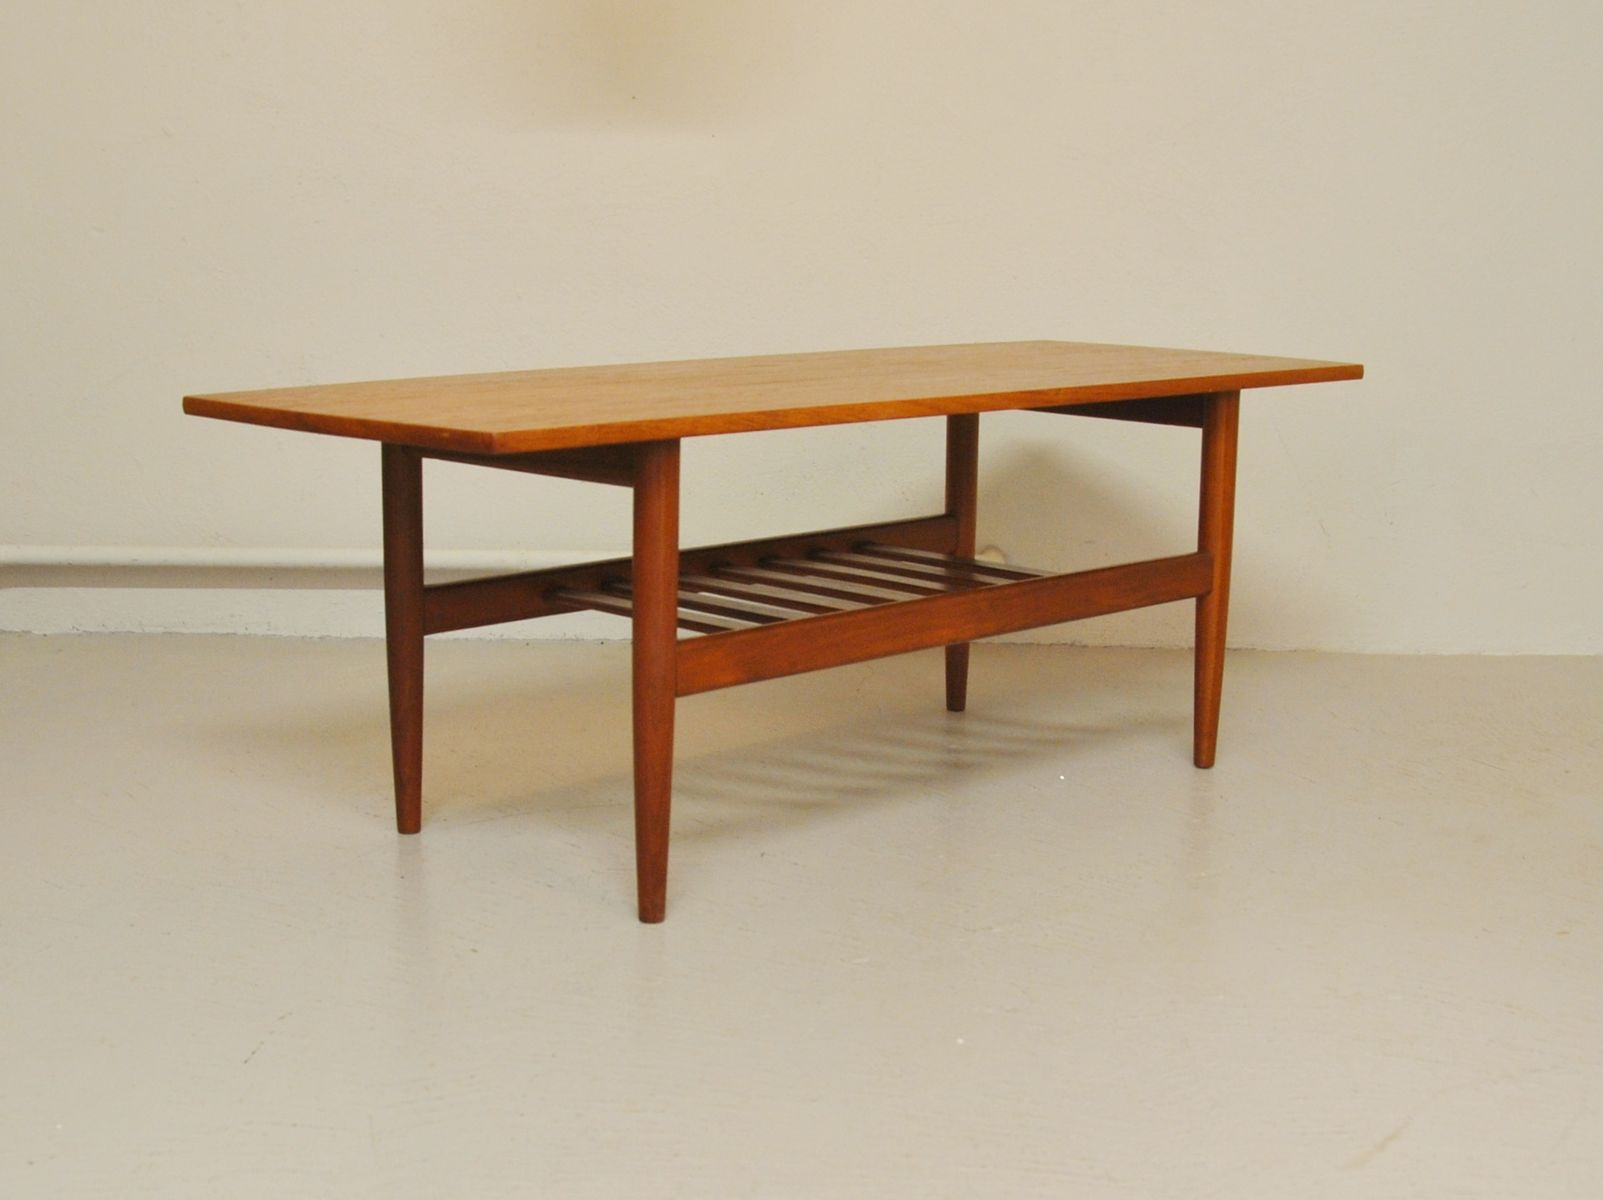 Scandinavian teak coffee table 1960s for sale at pamono for Scandinavian coffee table